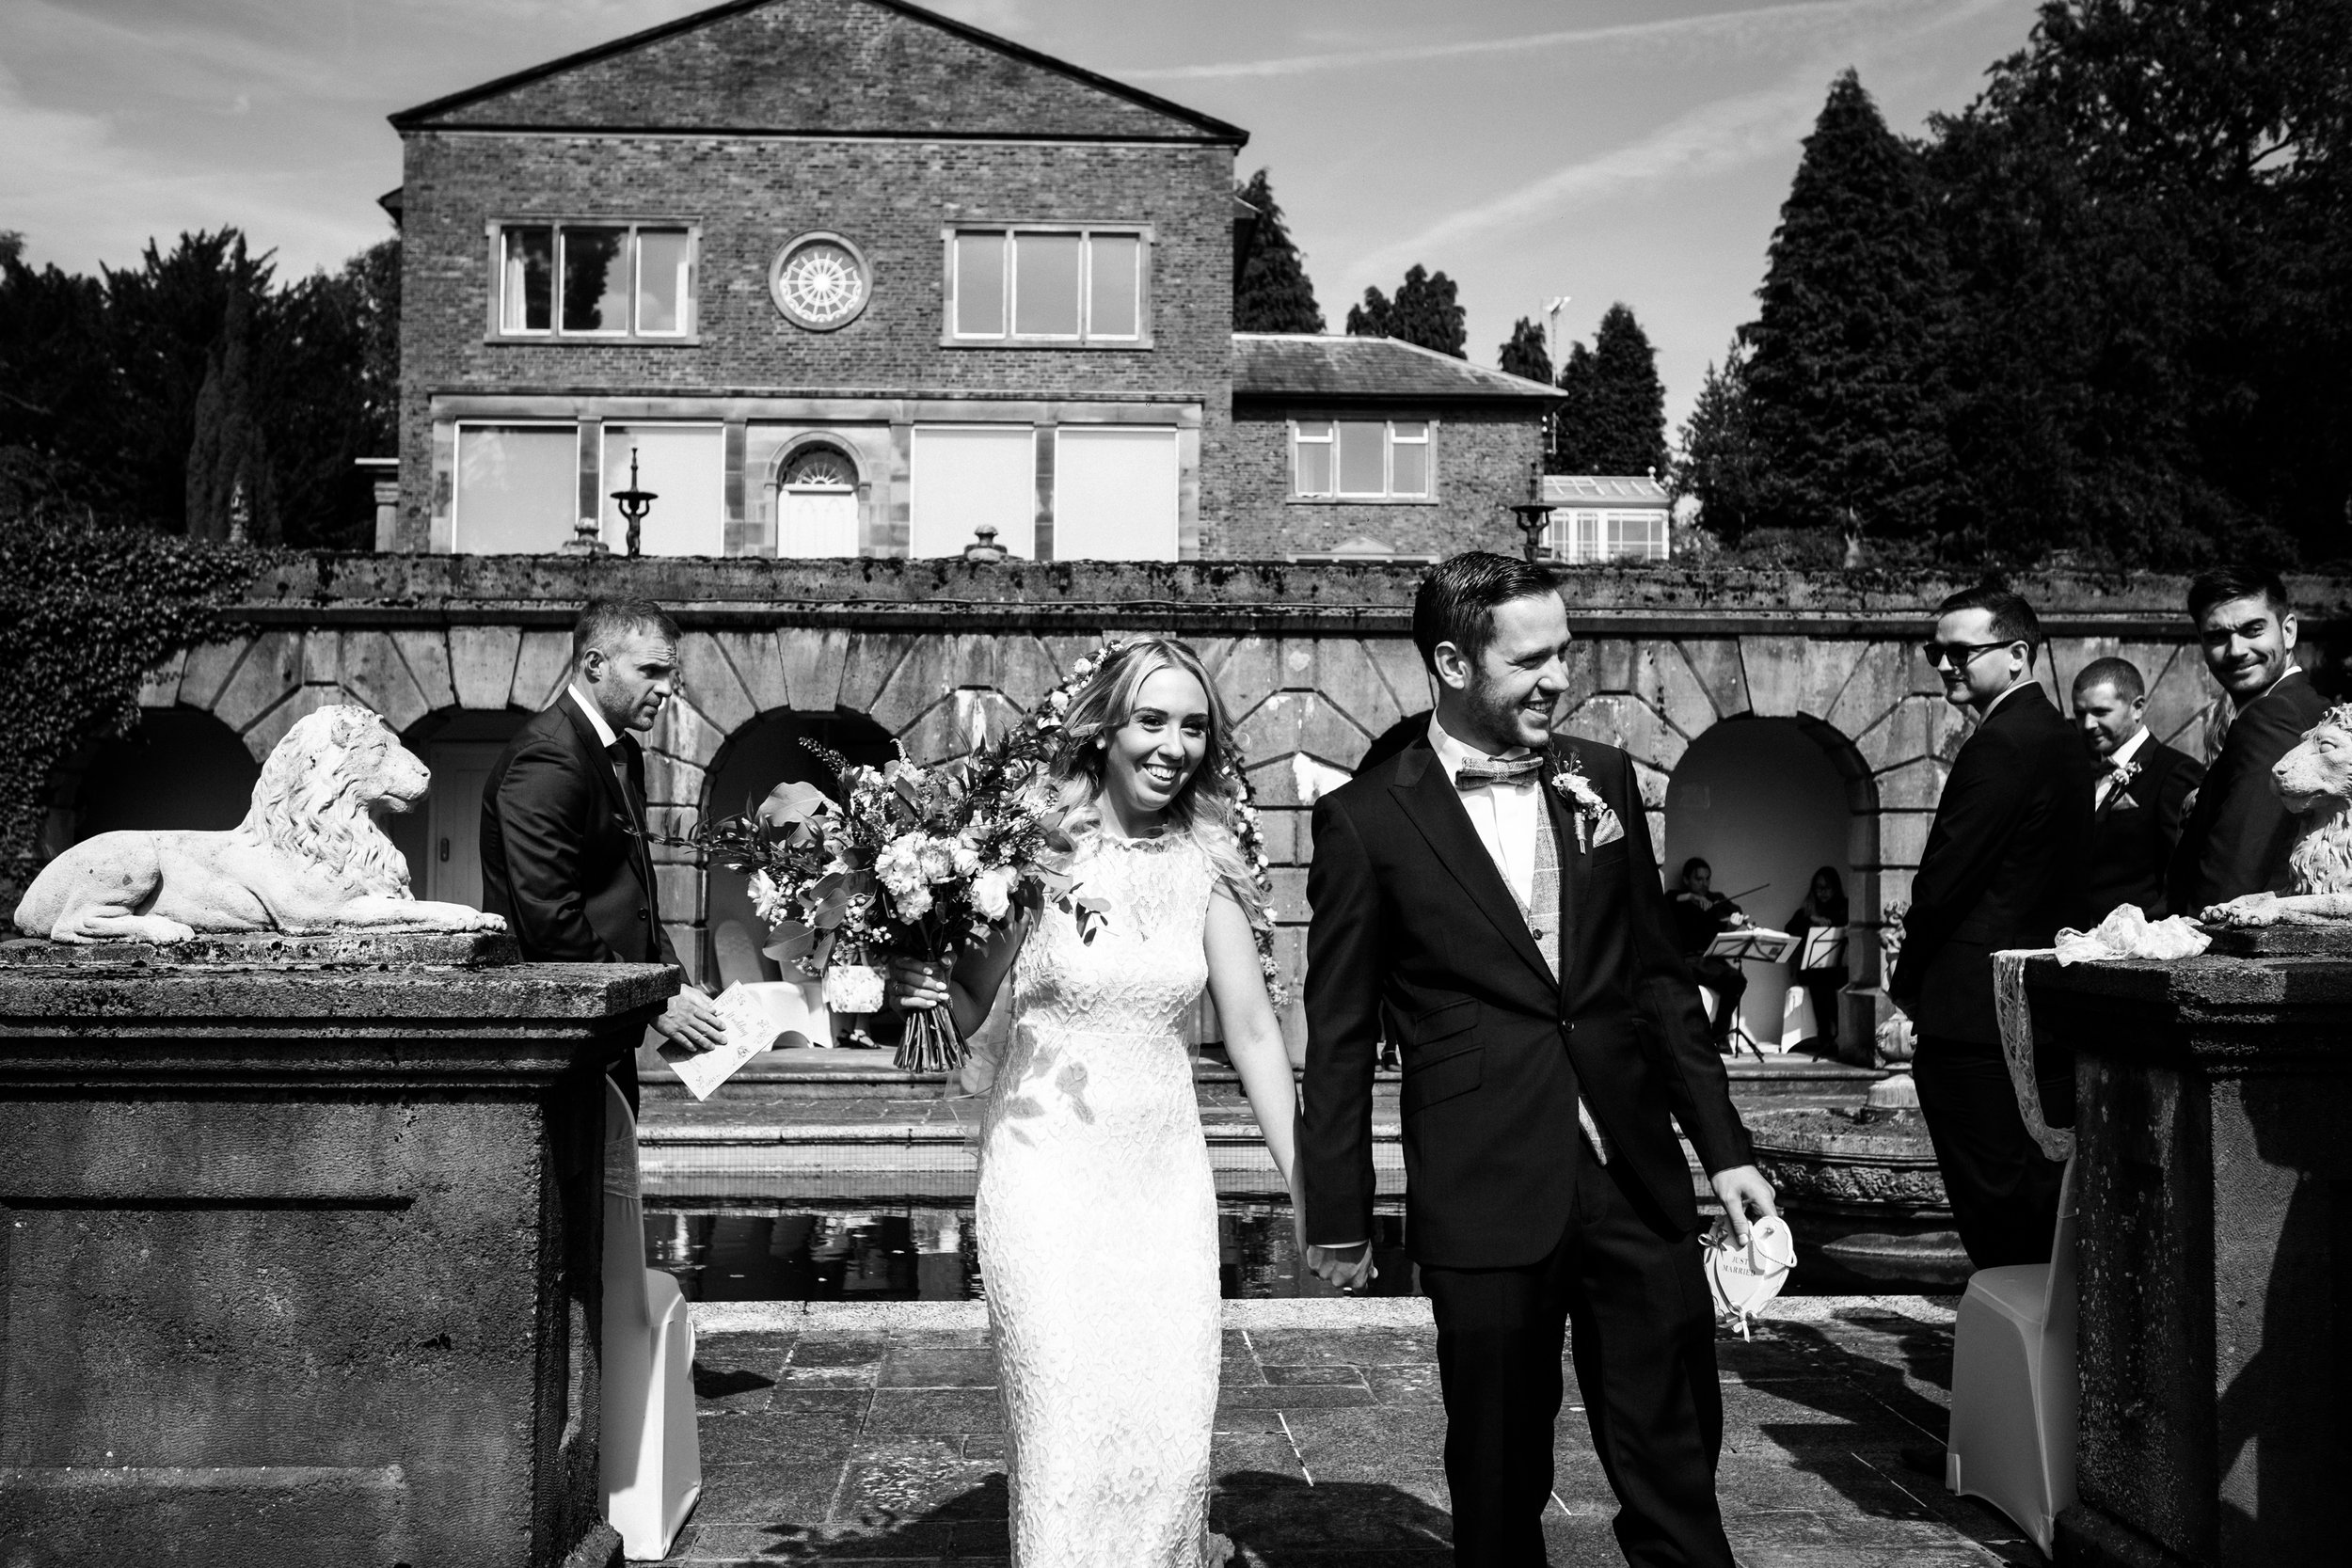 Summer Documentary Wedding Photography at Consall Hall Gardens Outdoor Ceremony Cockapoo dog - Jenny Harper-26.jpg